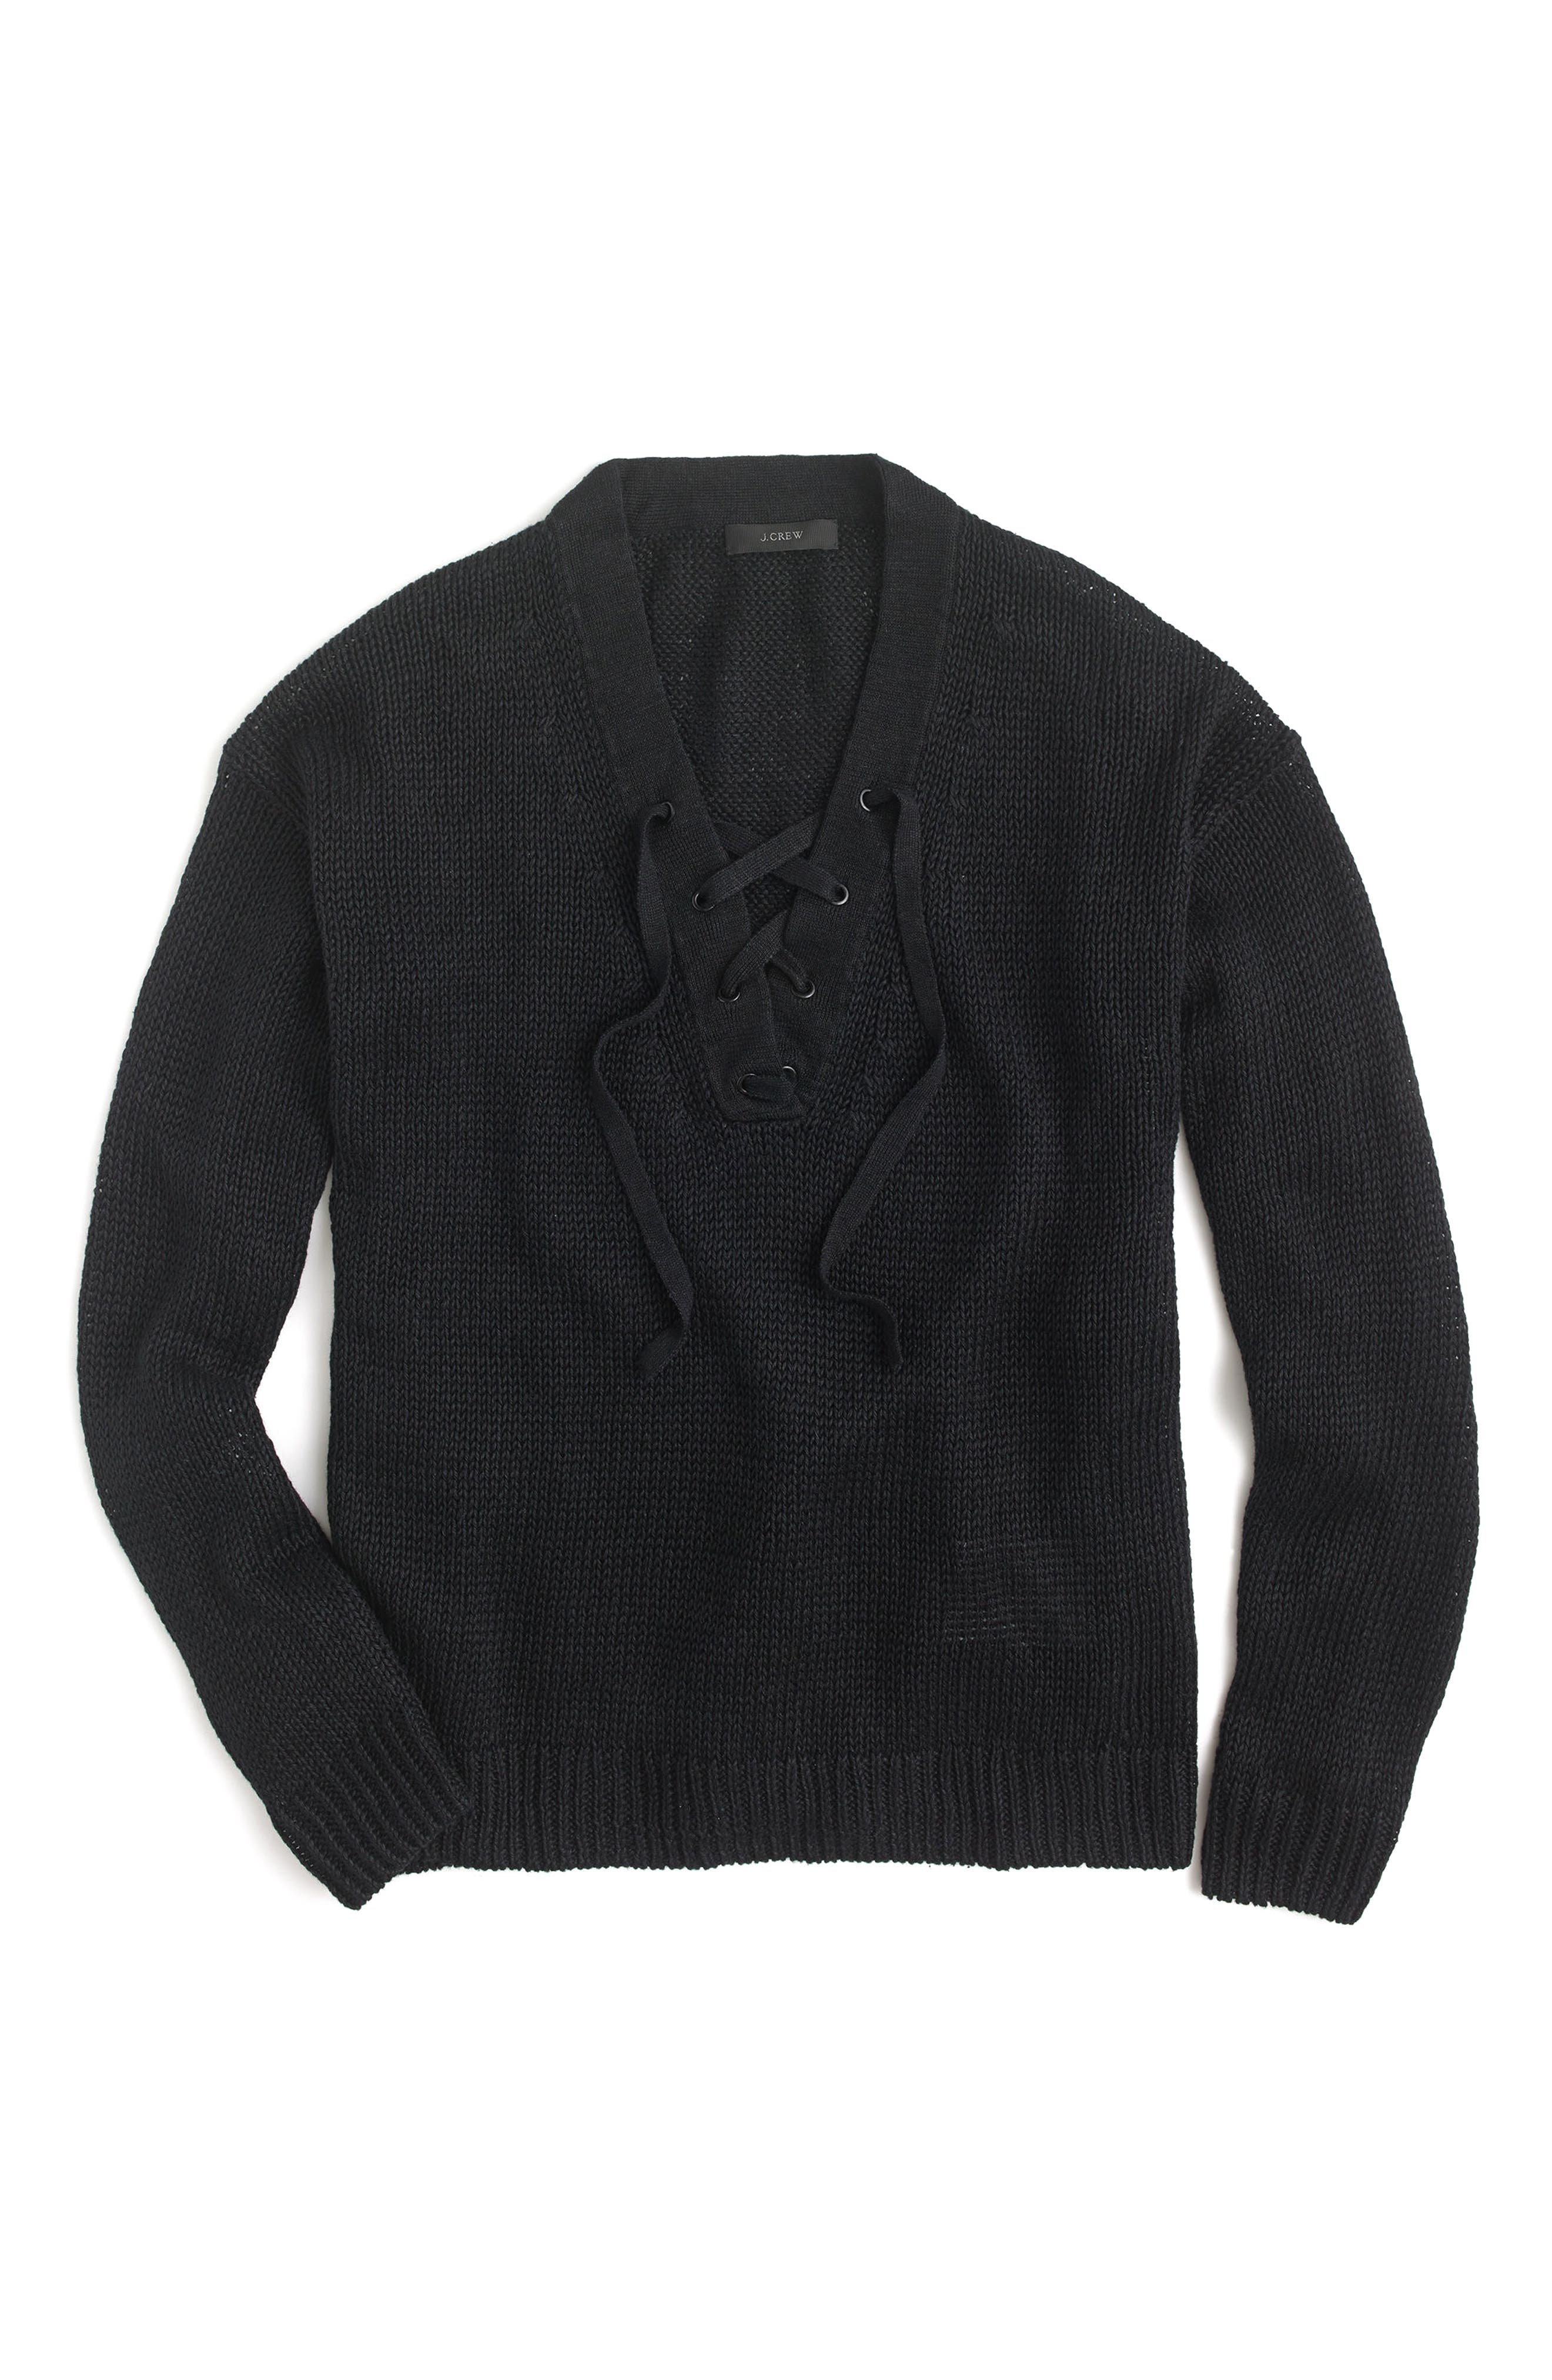 Alternate Image 1 Selected - J.Crew Linen Lace-Up Beach Sweater